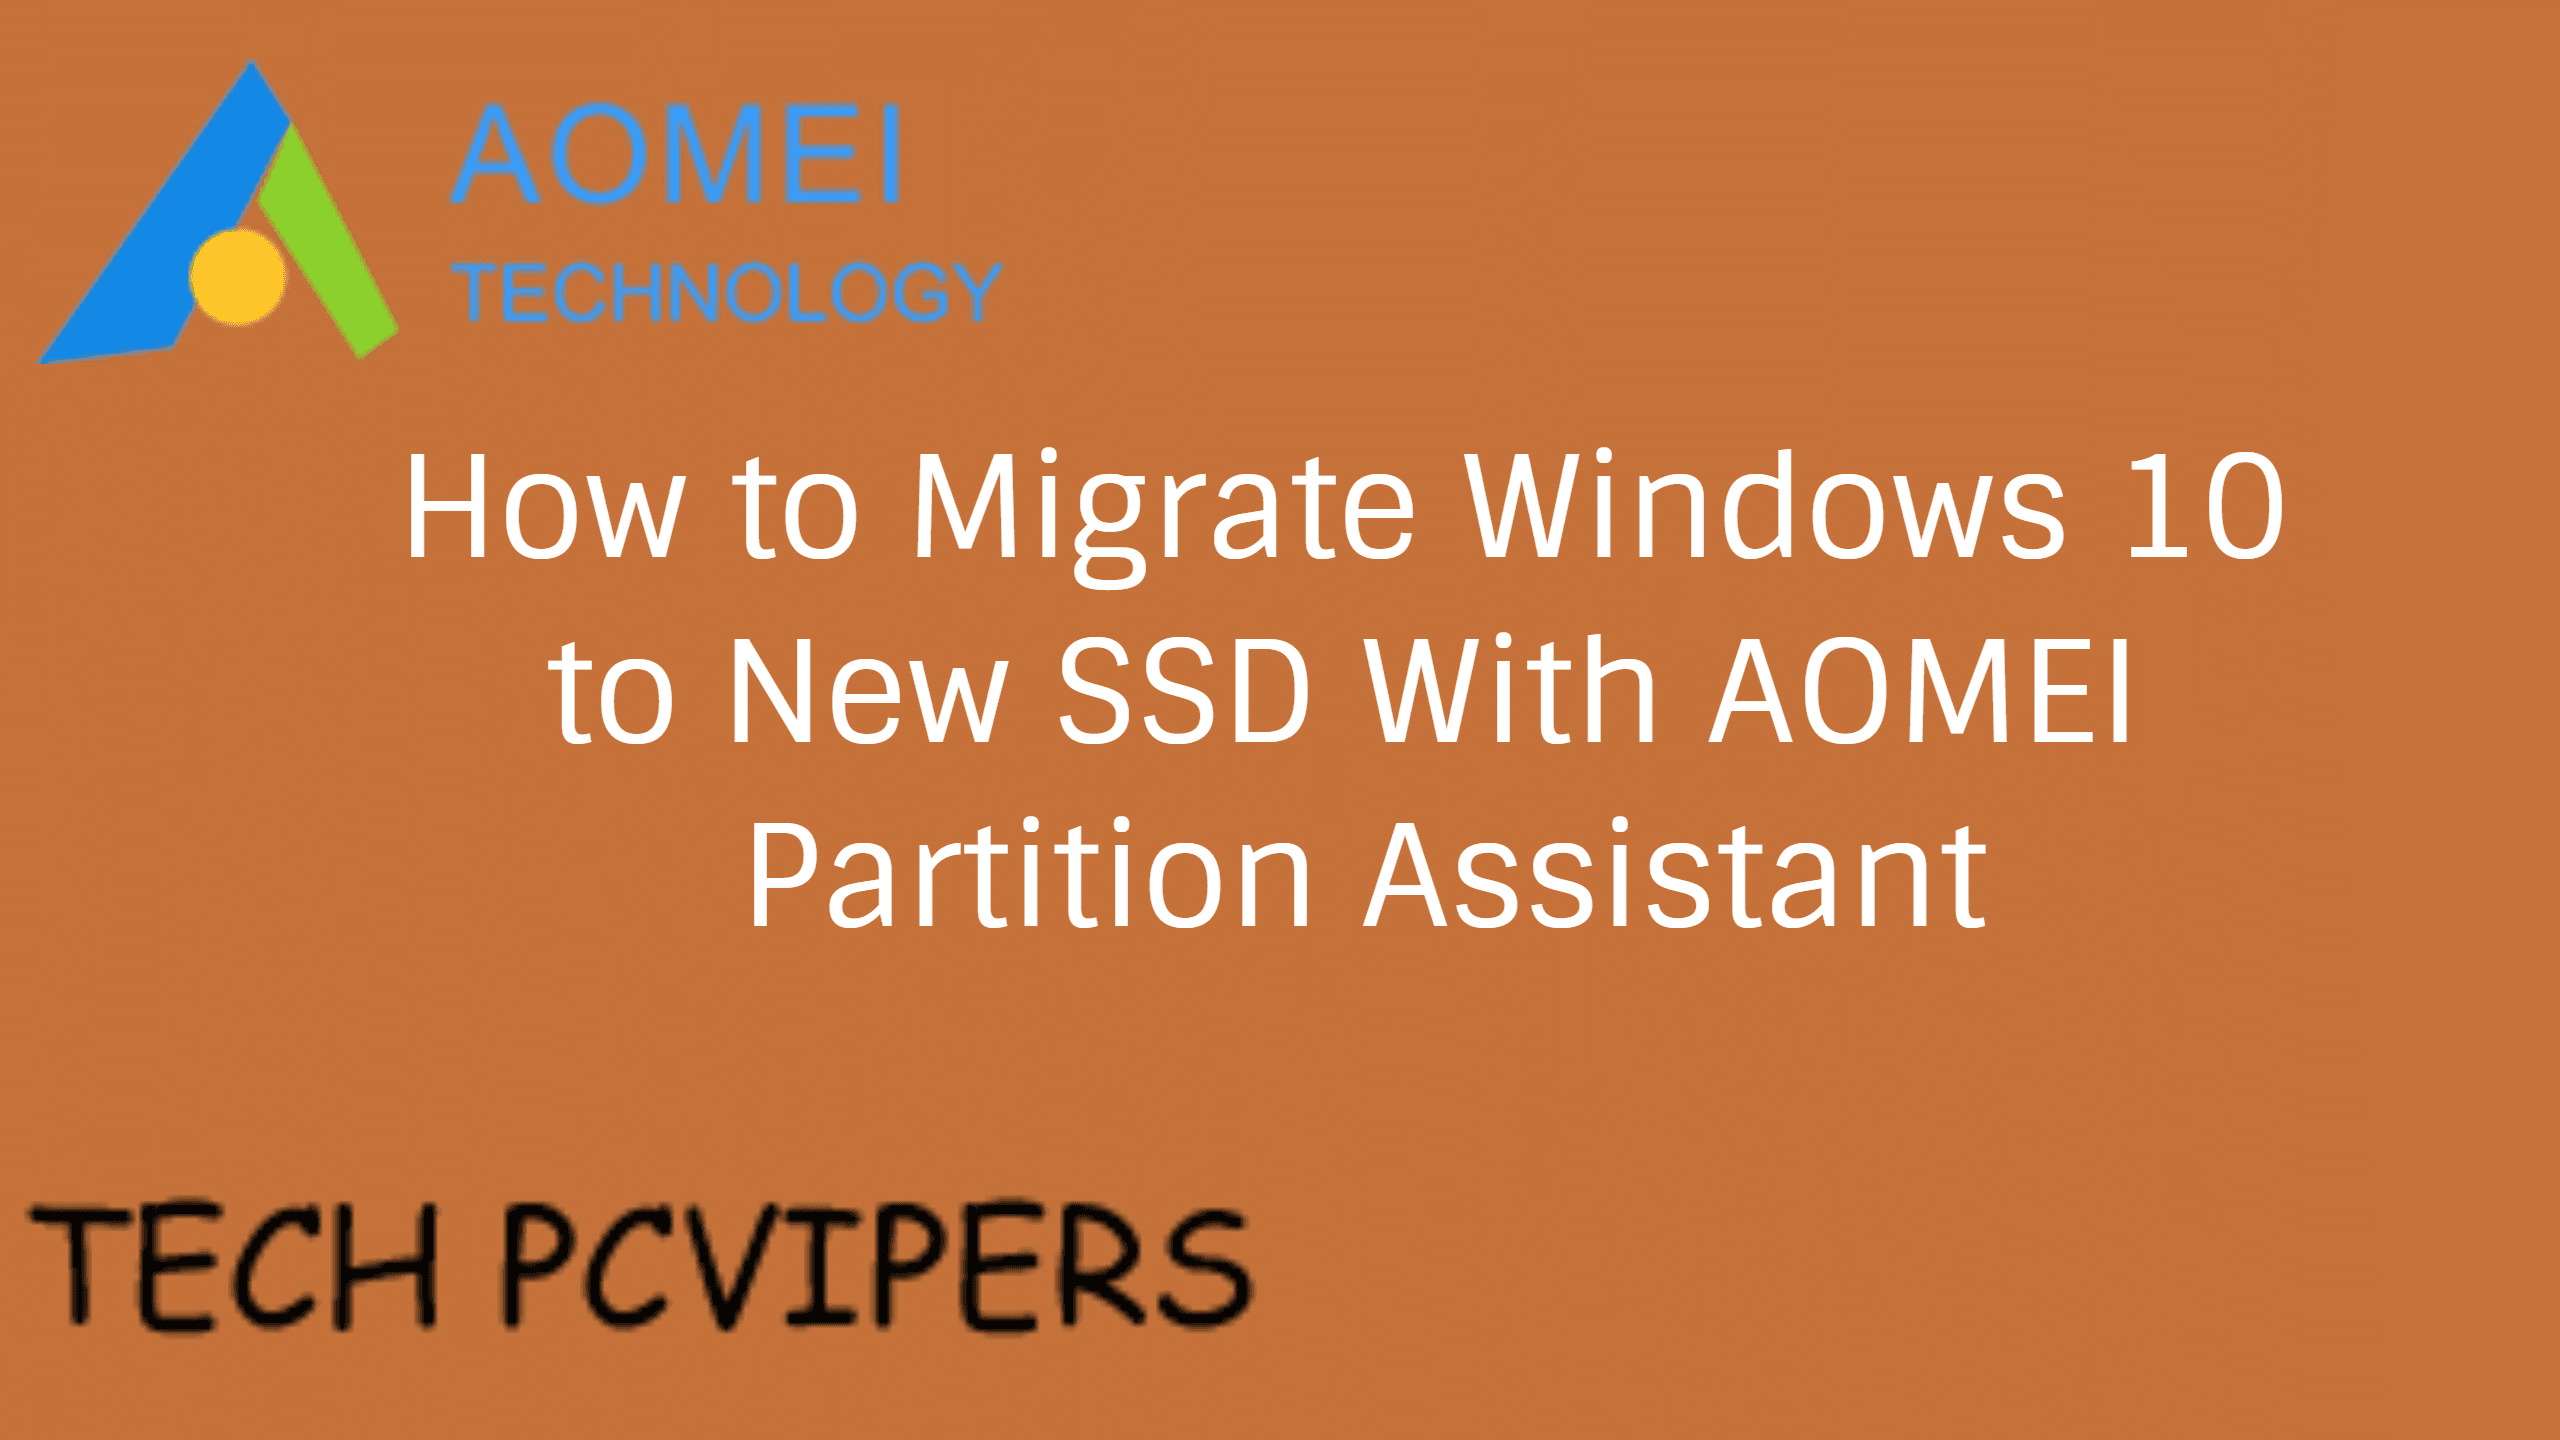 How to Migrate Windows 10 to New SSD With Freeware